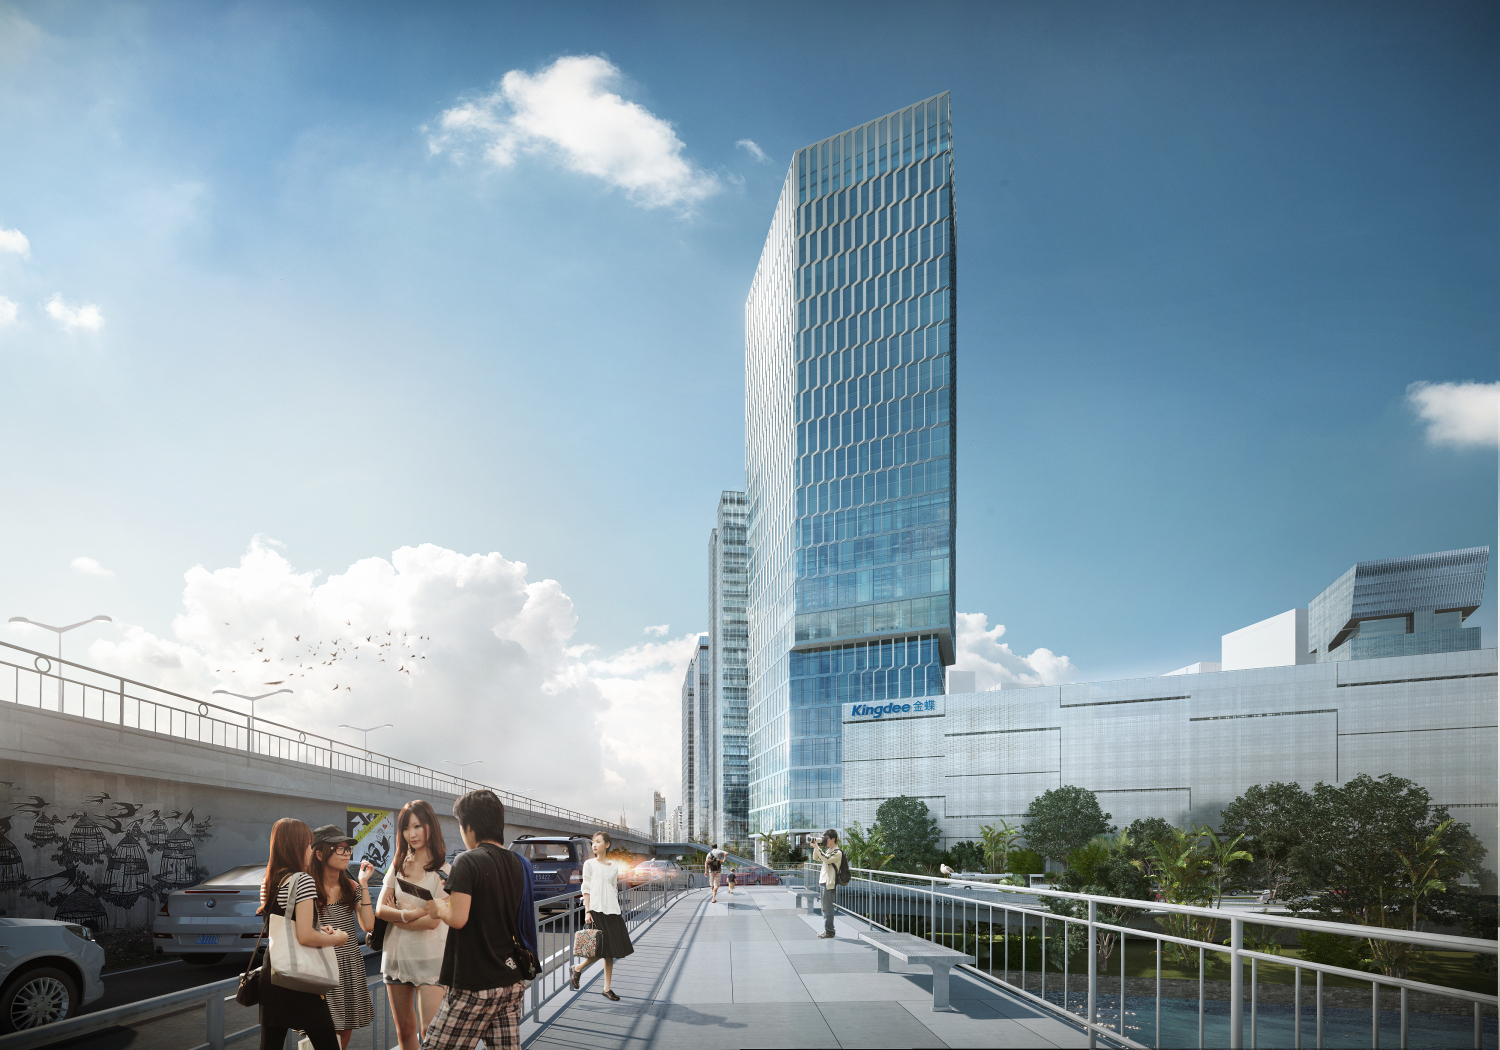 Henn Wins Competition To Design Kingdee Tower In China